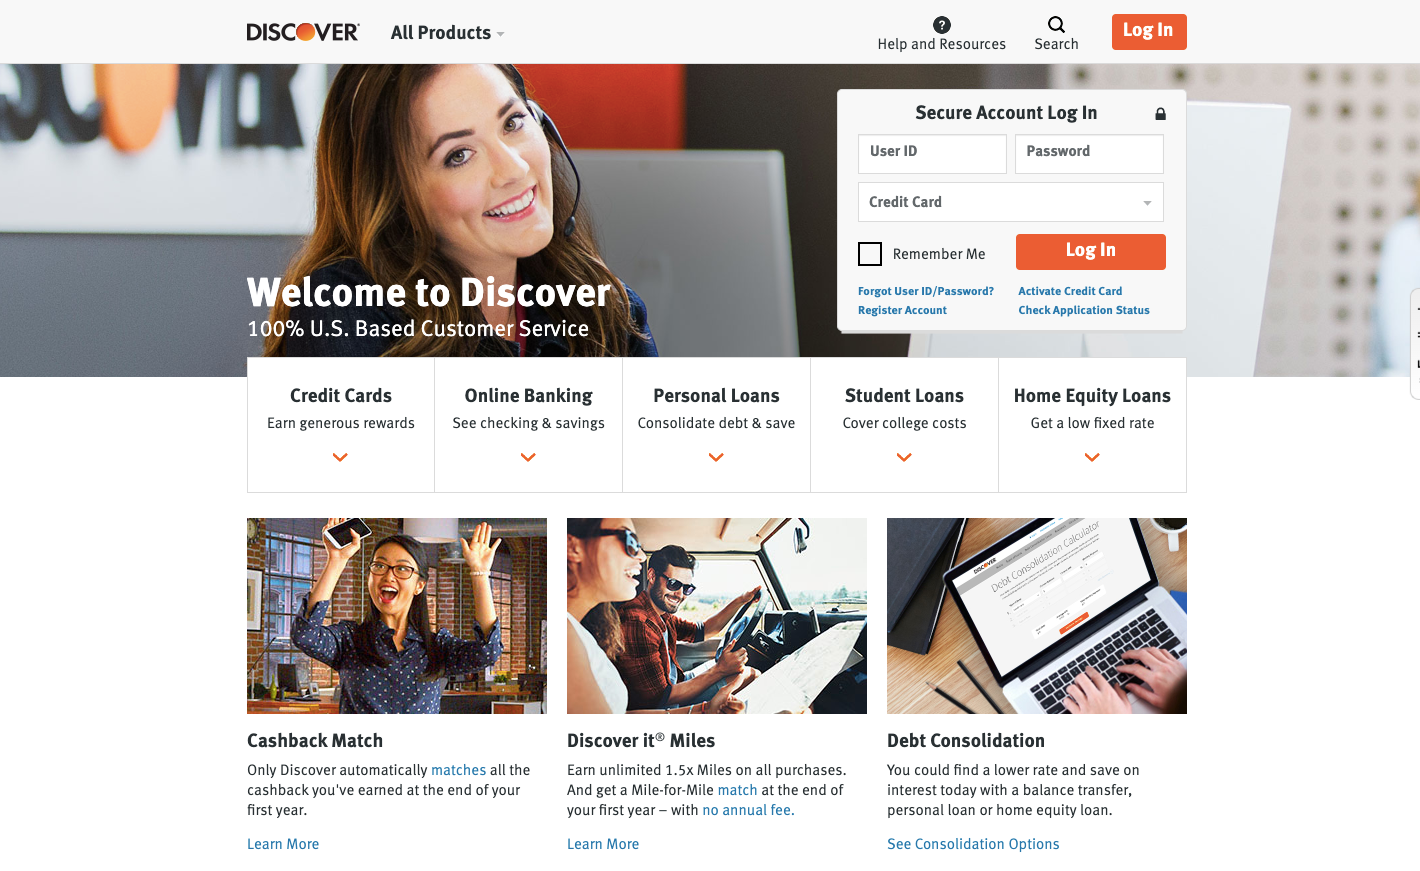 Discover Card Services